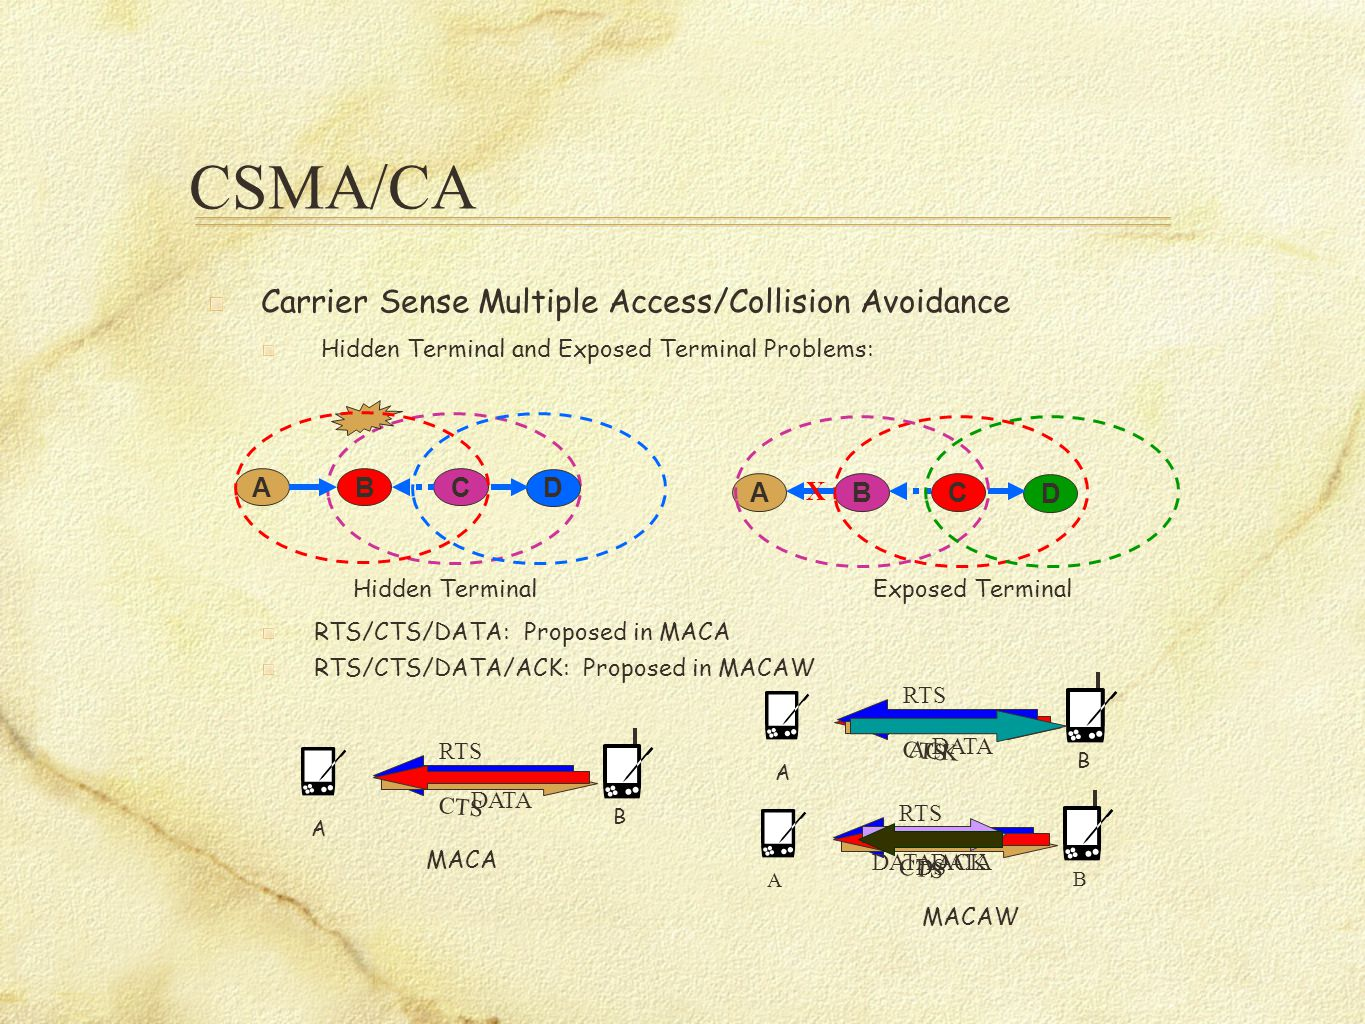 DATA CSMA/CA Carrier Sense Multiple Access/Collision Avoidance Hidden Terminal and Exposed Terminal Problems: RTS/CTS/DATA: Proposed in MACA RTS/CTS/DATA/ACK: Proposed in MACAW BCA D BCA D X A B RTS CTS DATA Hidden TerminalExposed Terminal A B RTS CTS MACA MACAW ACK A B RTS CTS DATA DATA ACKDS